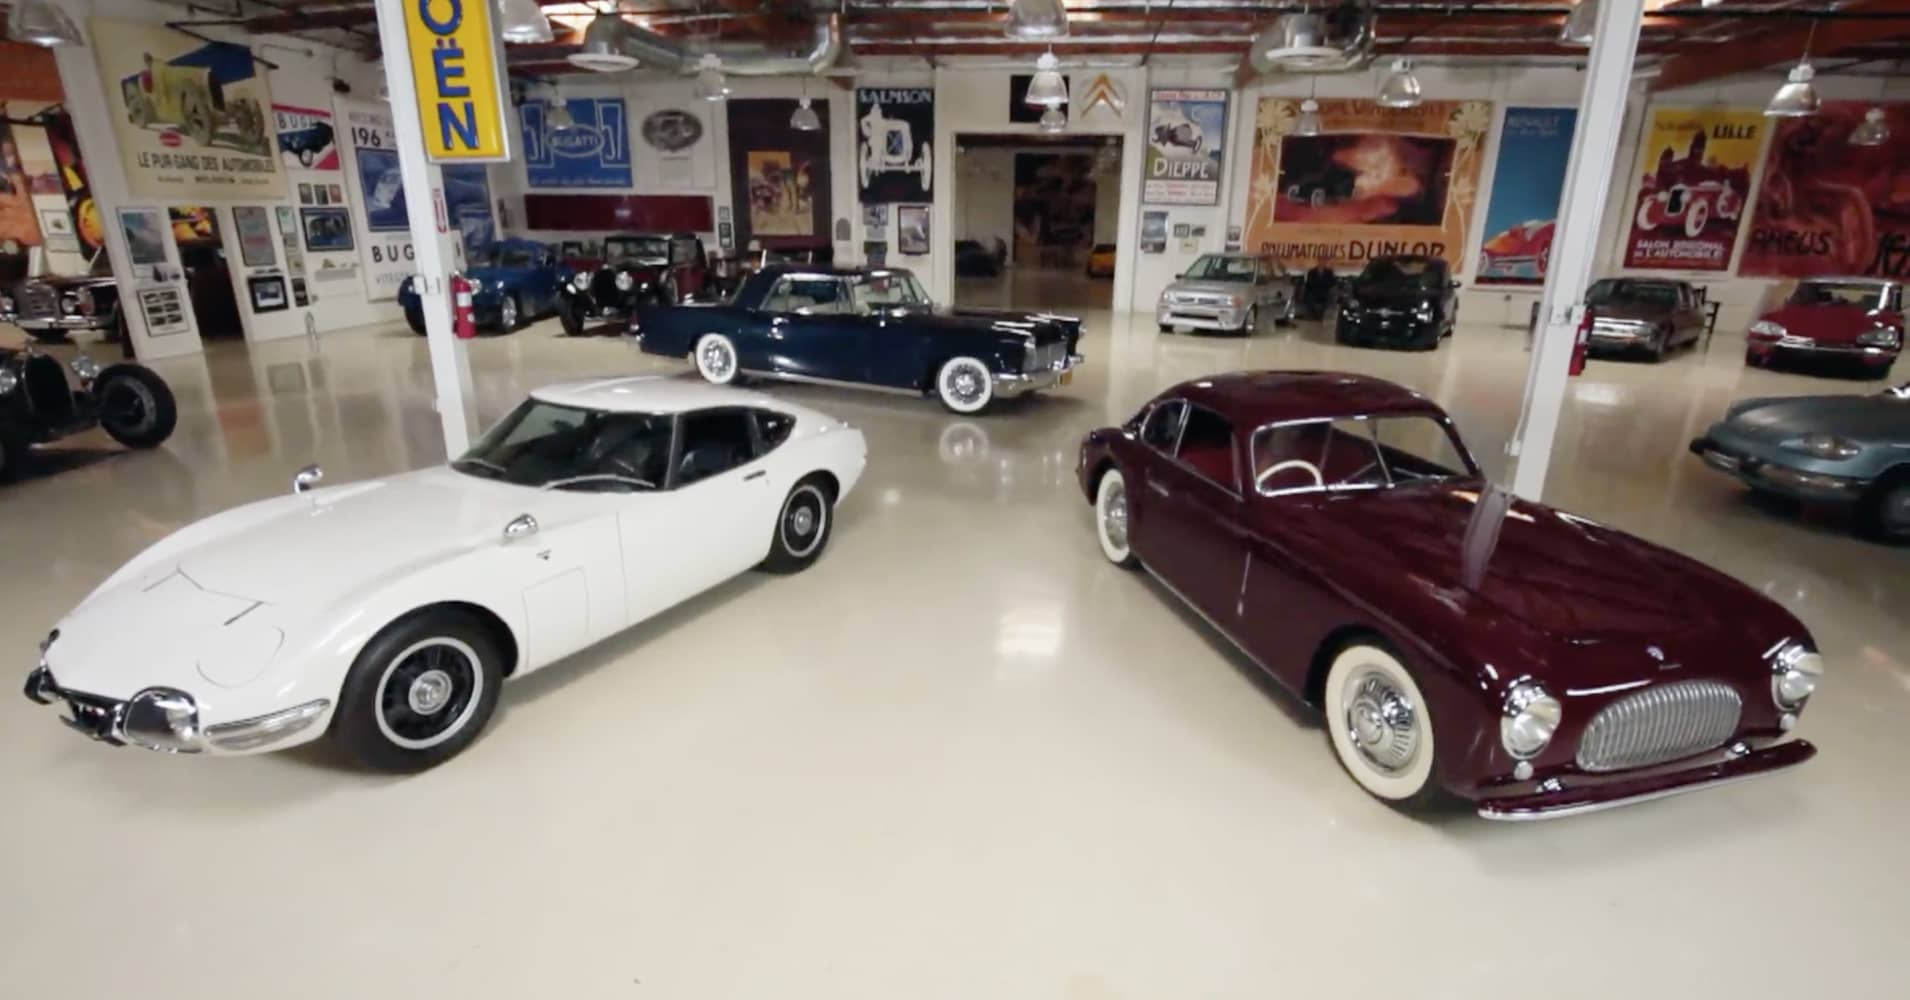 Jay Leno's Garage: Which of these cars is the best investment?